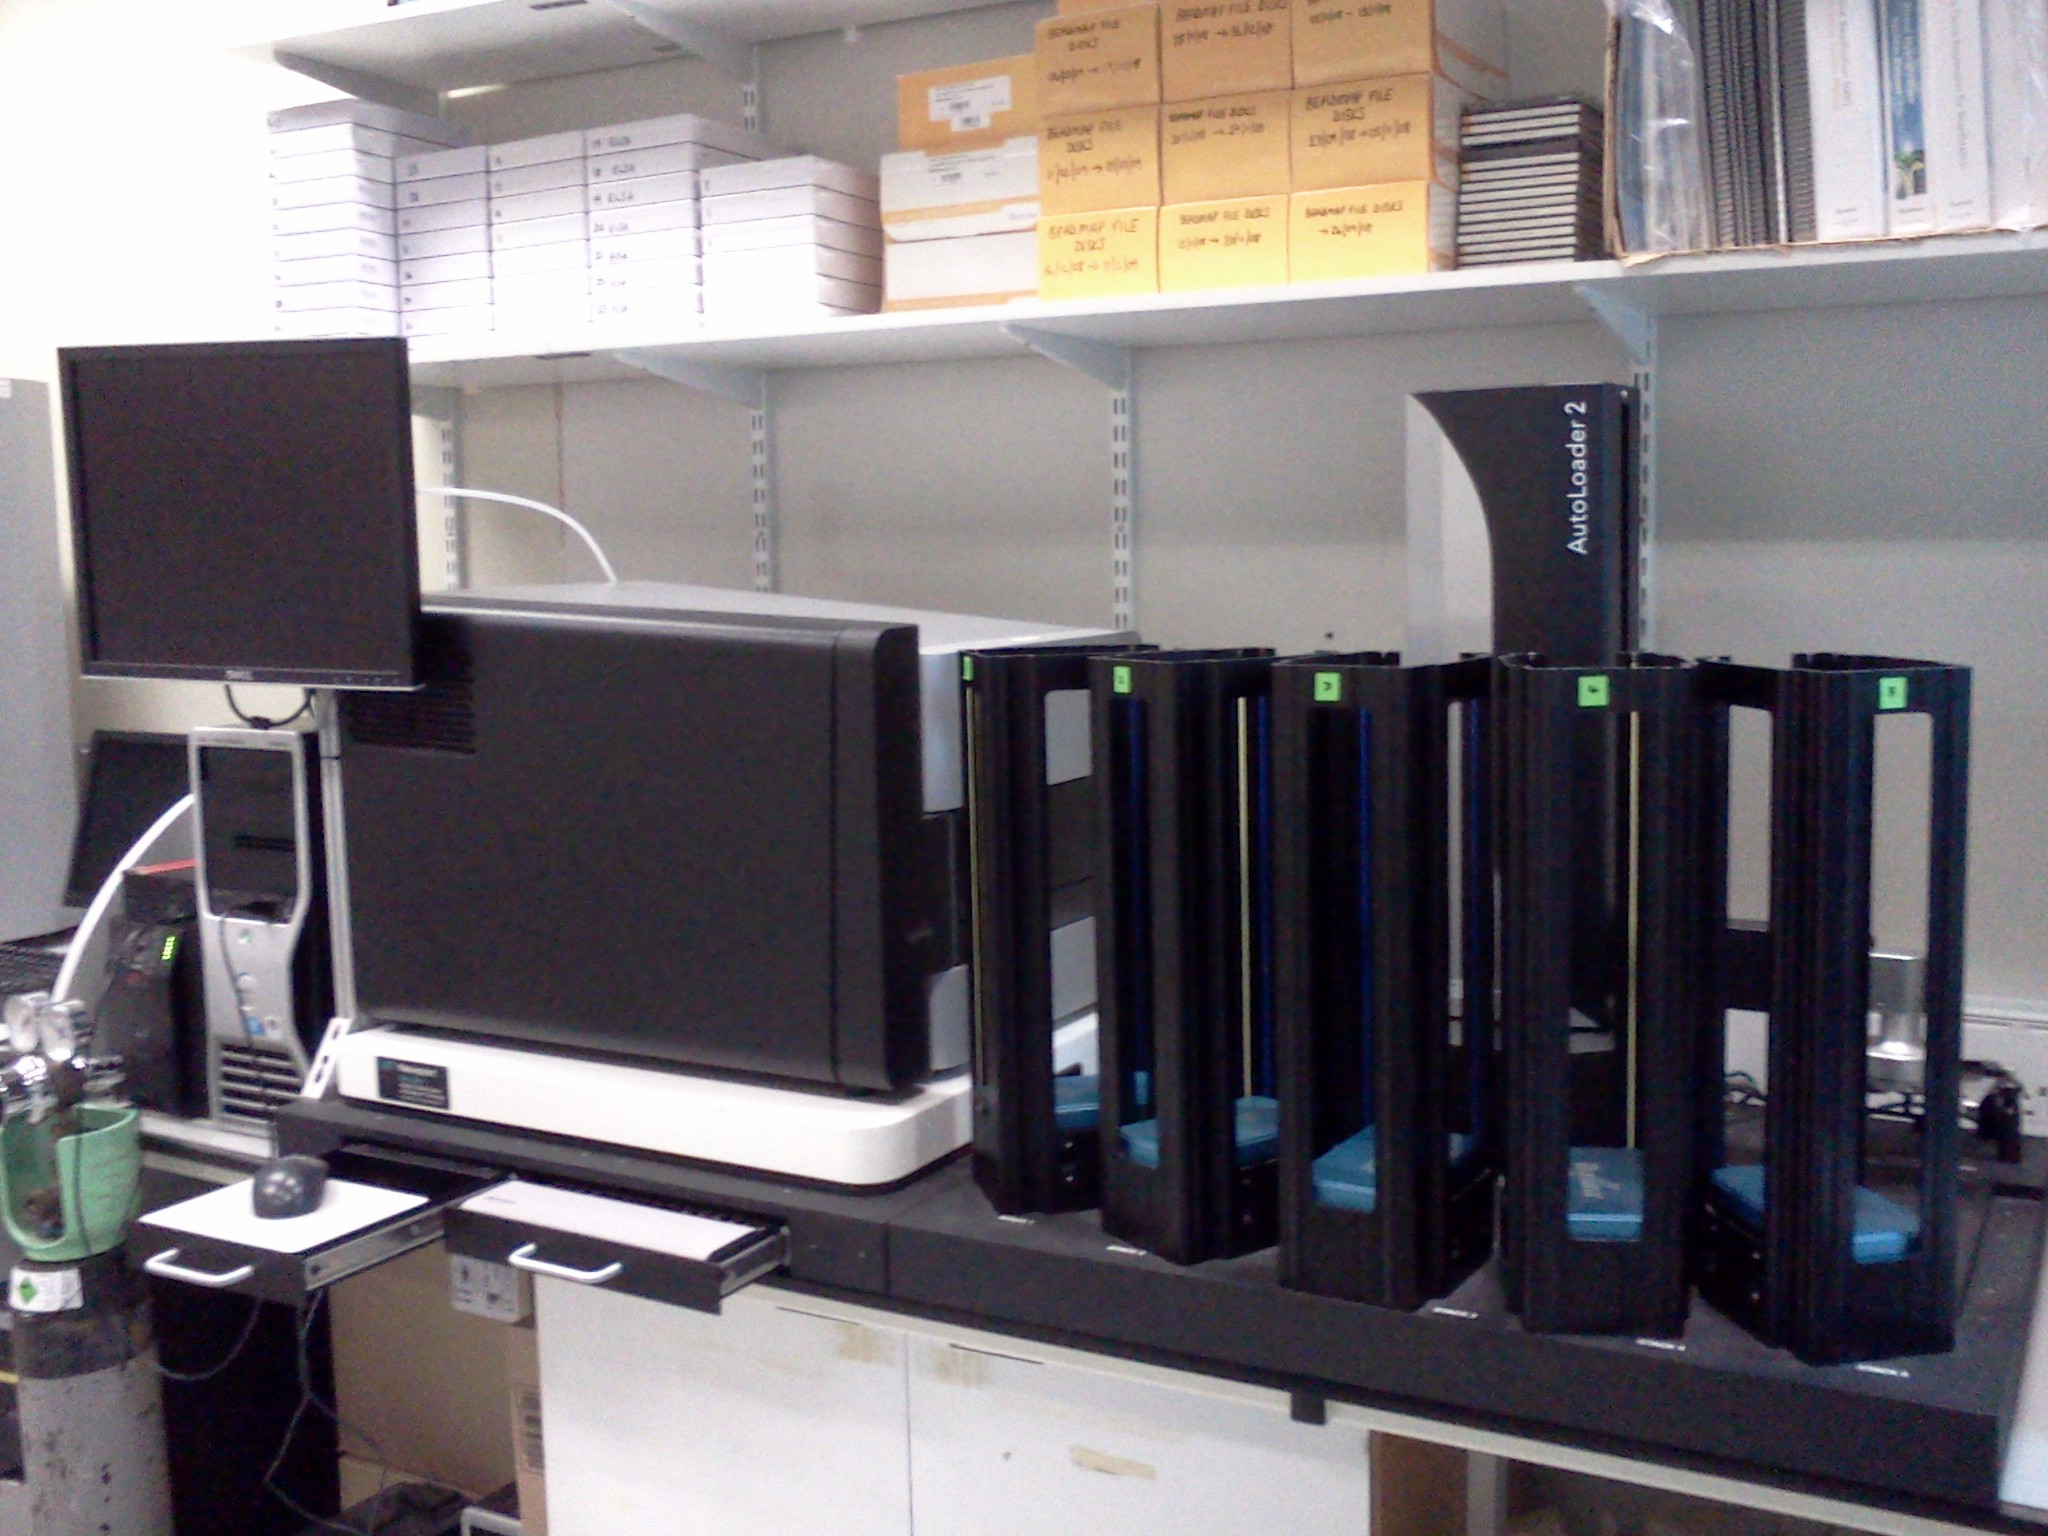 Illumina iScan Plus BeadArray System